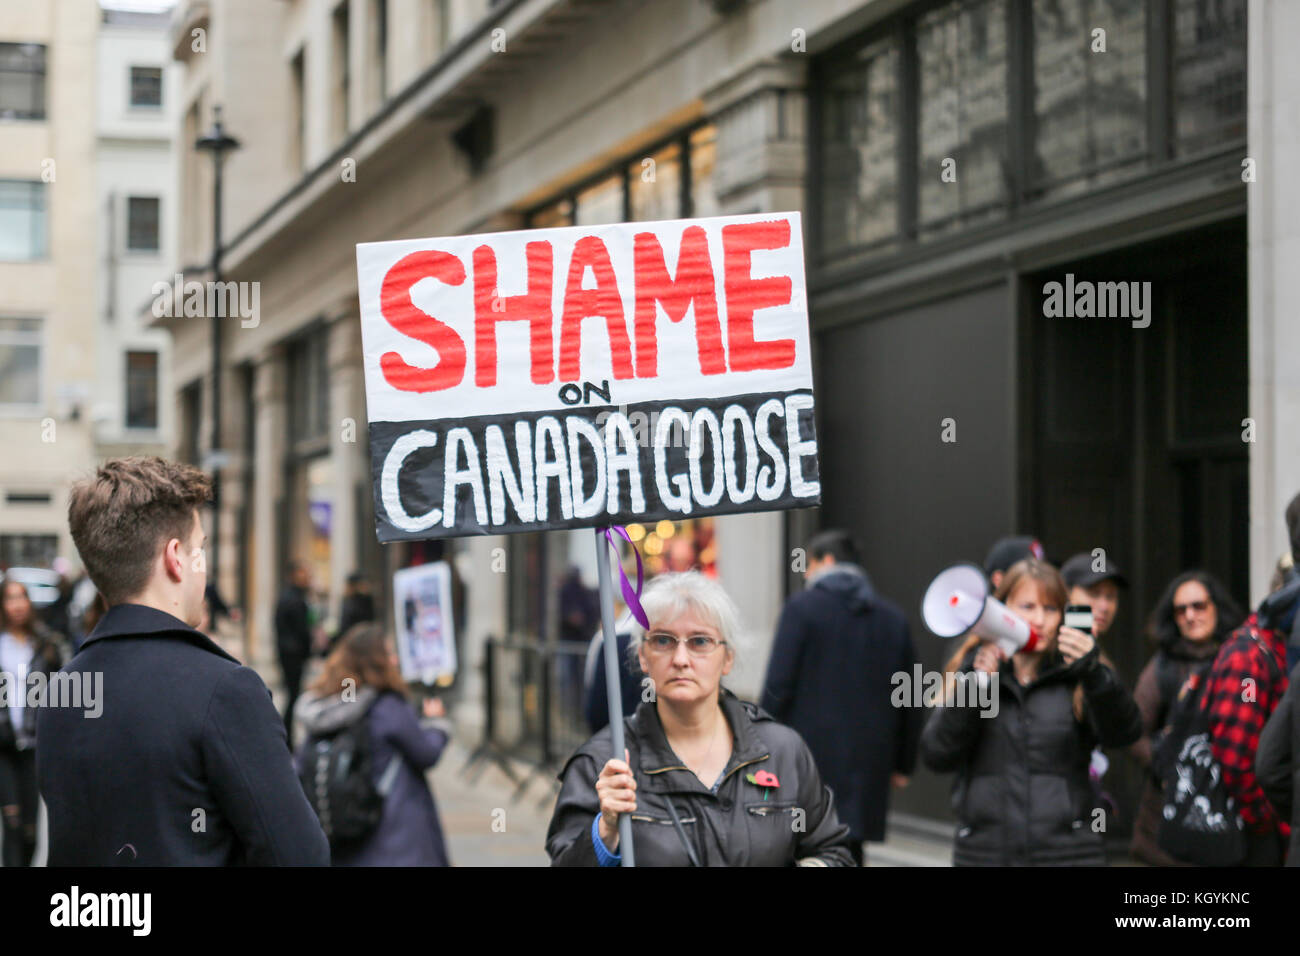 London, UK. 11th Nov, 2017. Anti fur protesters demonstrate outside the Canada Goose Store in Regents Street. Credit: Penelope Barritt/Alamy Live News